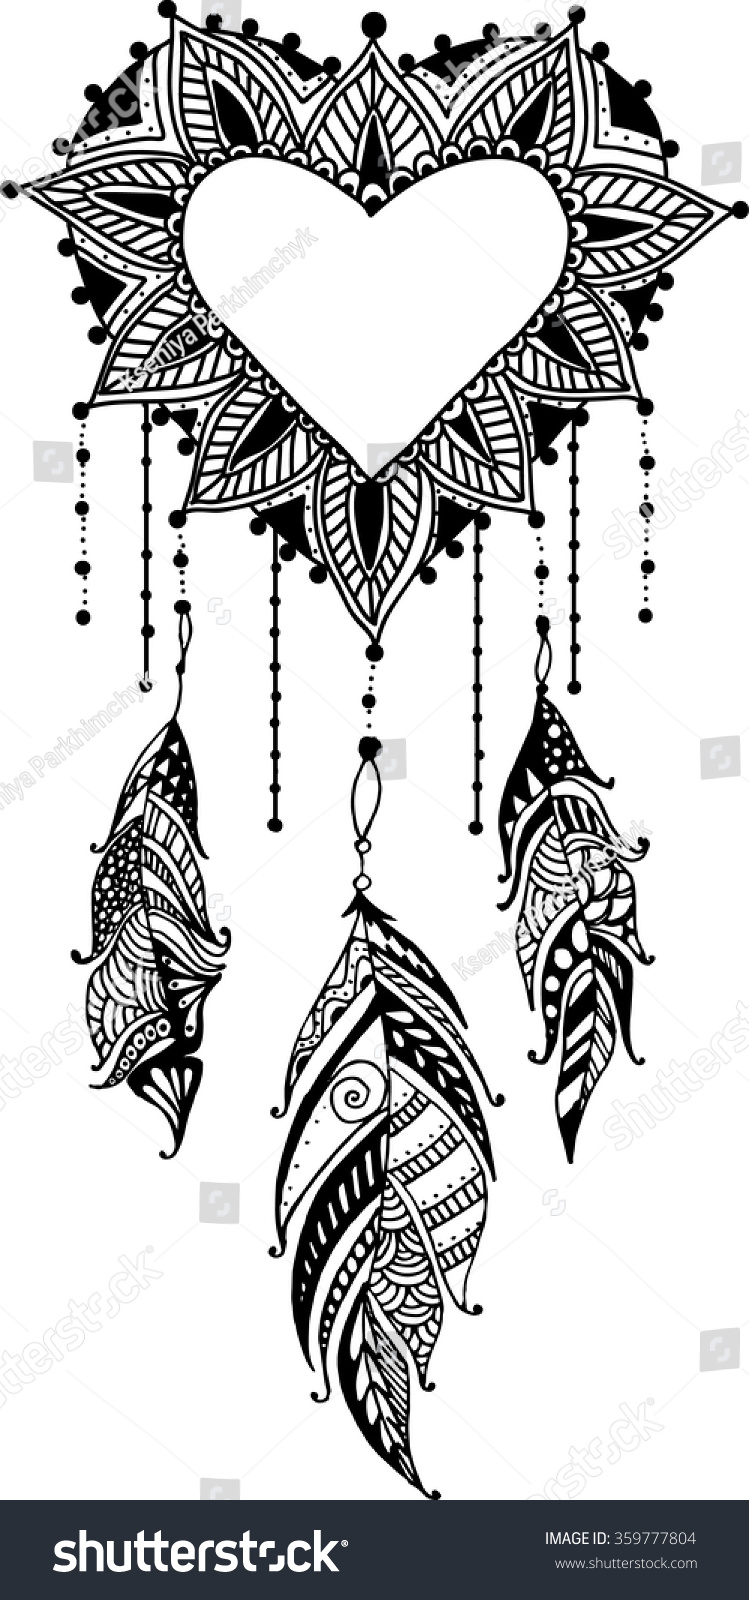 Handdrawn Heart Mandala Dreamcatcher Feathers Ethnic Stock